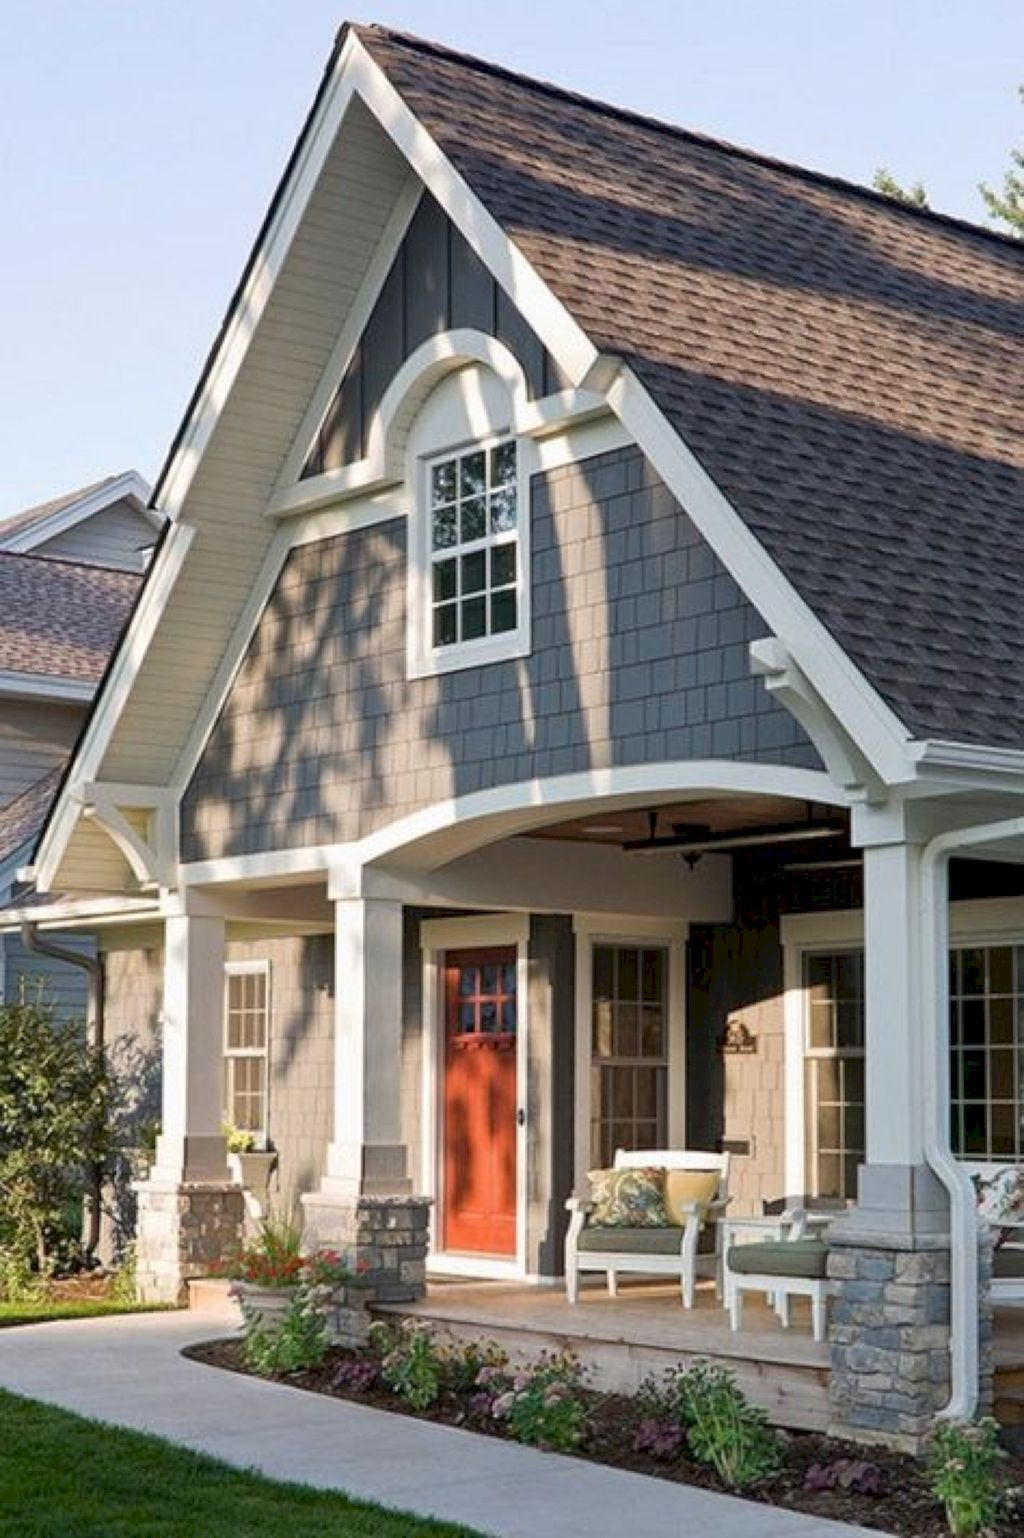 45 Farmhouse Home Exterior Design Ideas